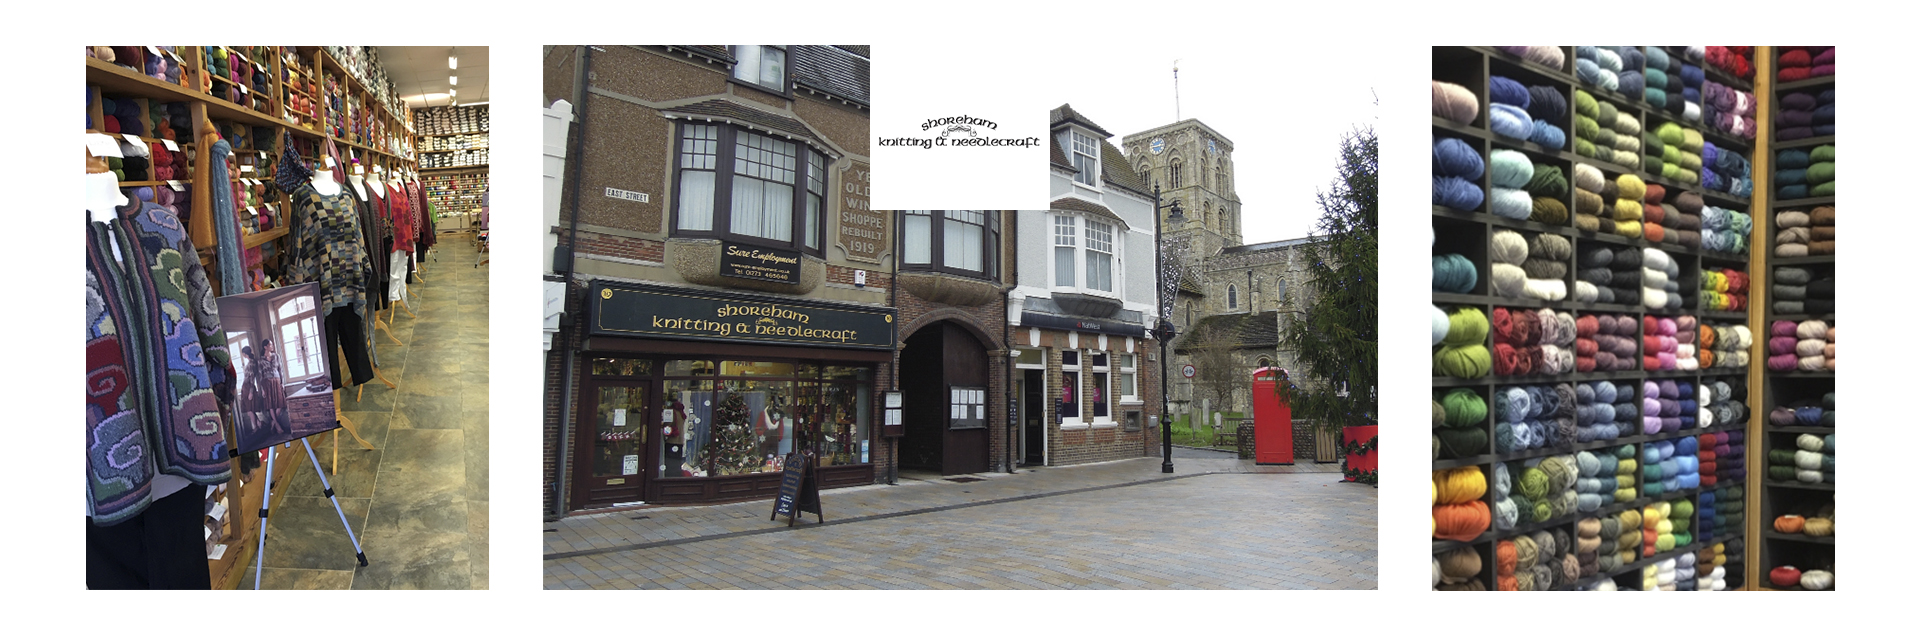 Situated in a pretty seaside town, a stone's throw from the River Adur and the sea, a historic building in Shoreham-by-Sea is home to Shoreham Knitting and Needlecraft, the first independent yarn store in the UK to stock Rowan yarns.